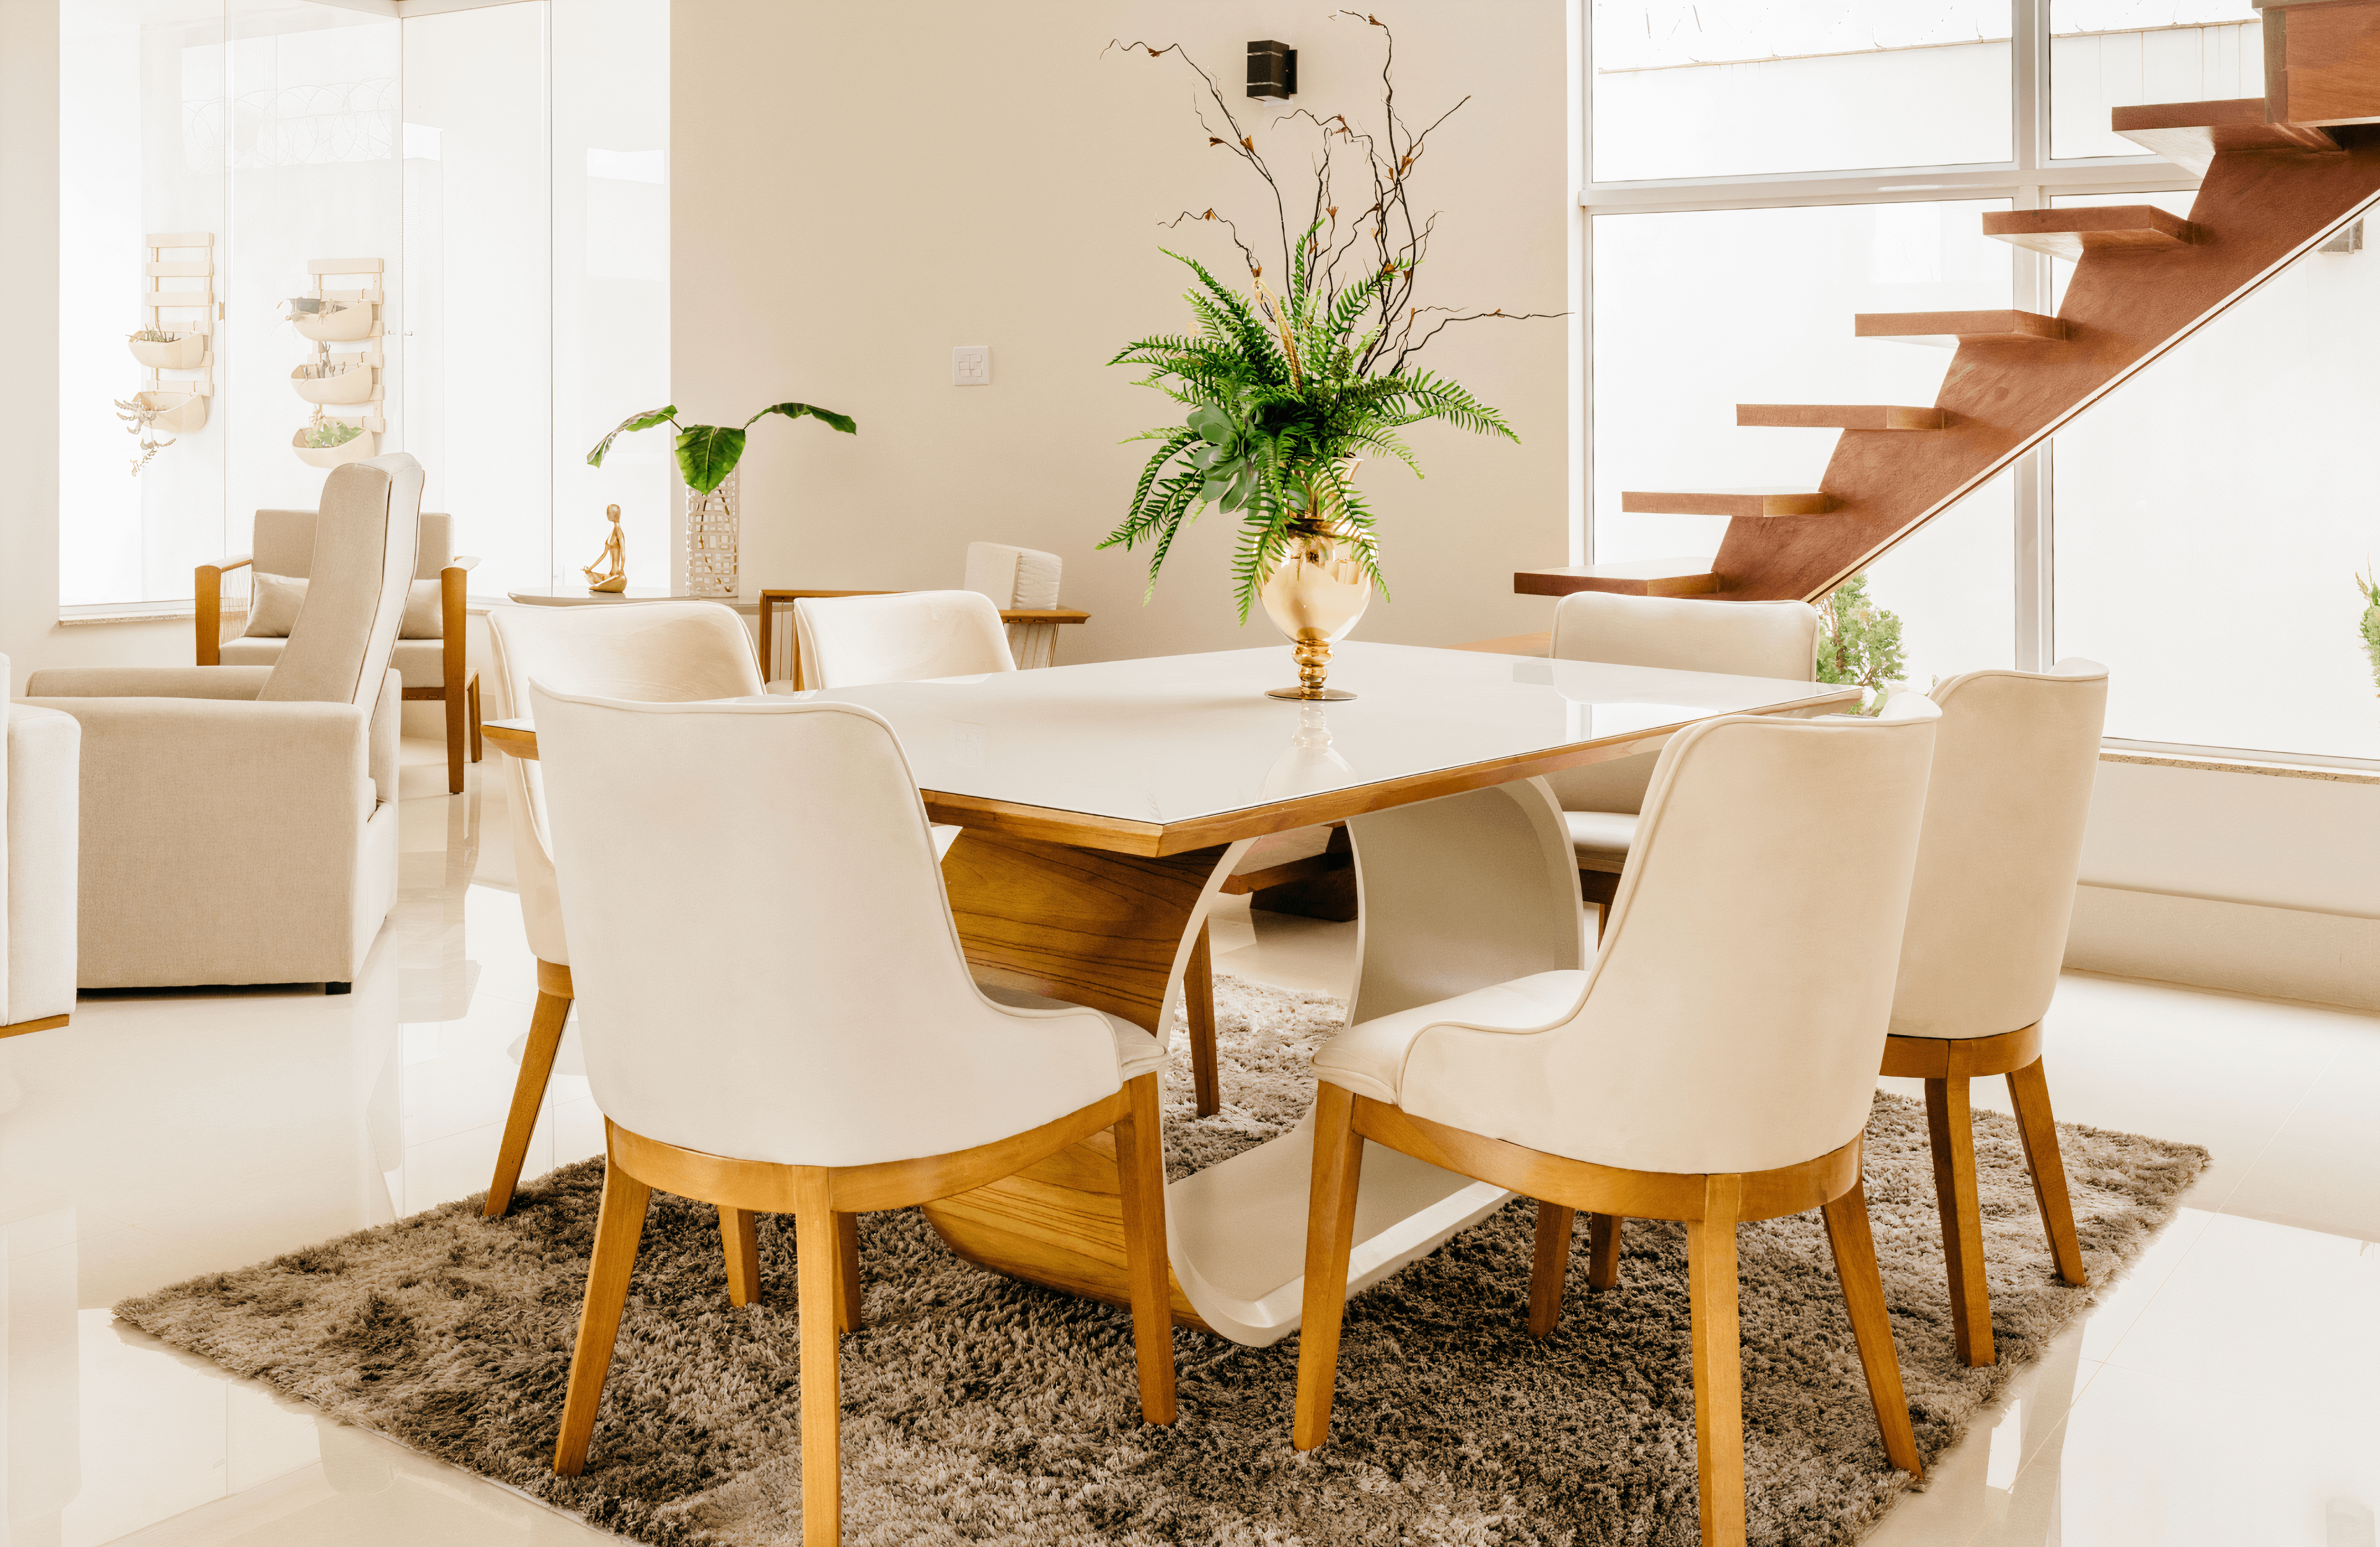 An image of a wooden dining room table with a white glass top, with white chairs surrounding it and a plant as the centerpiece.